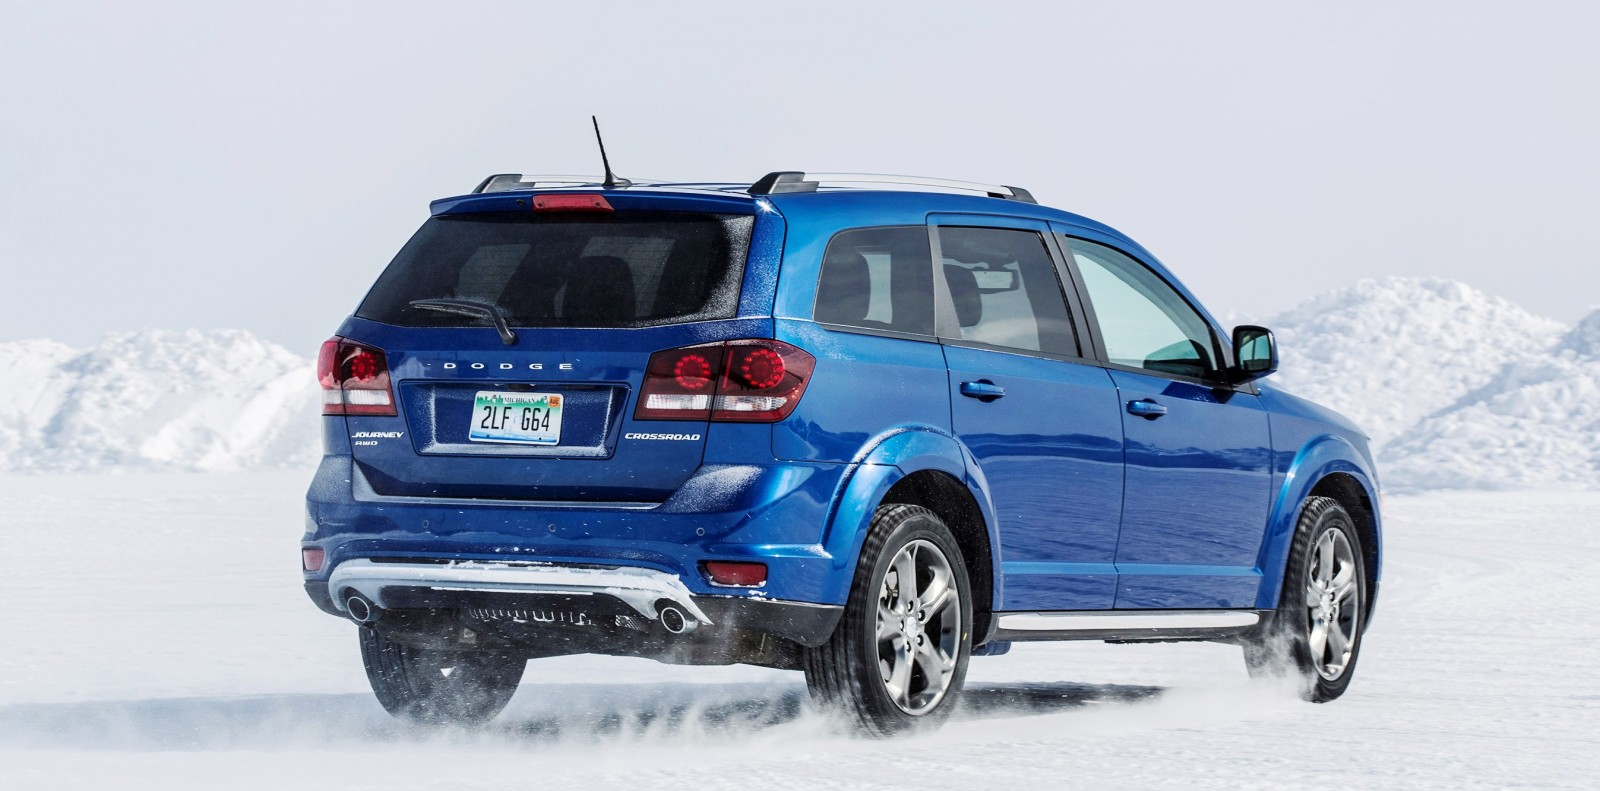 2015 Dodge Journey Crossroad >> 2015 Dodge Journey Crossroad AWD Review